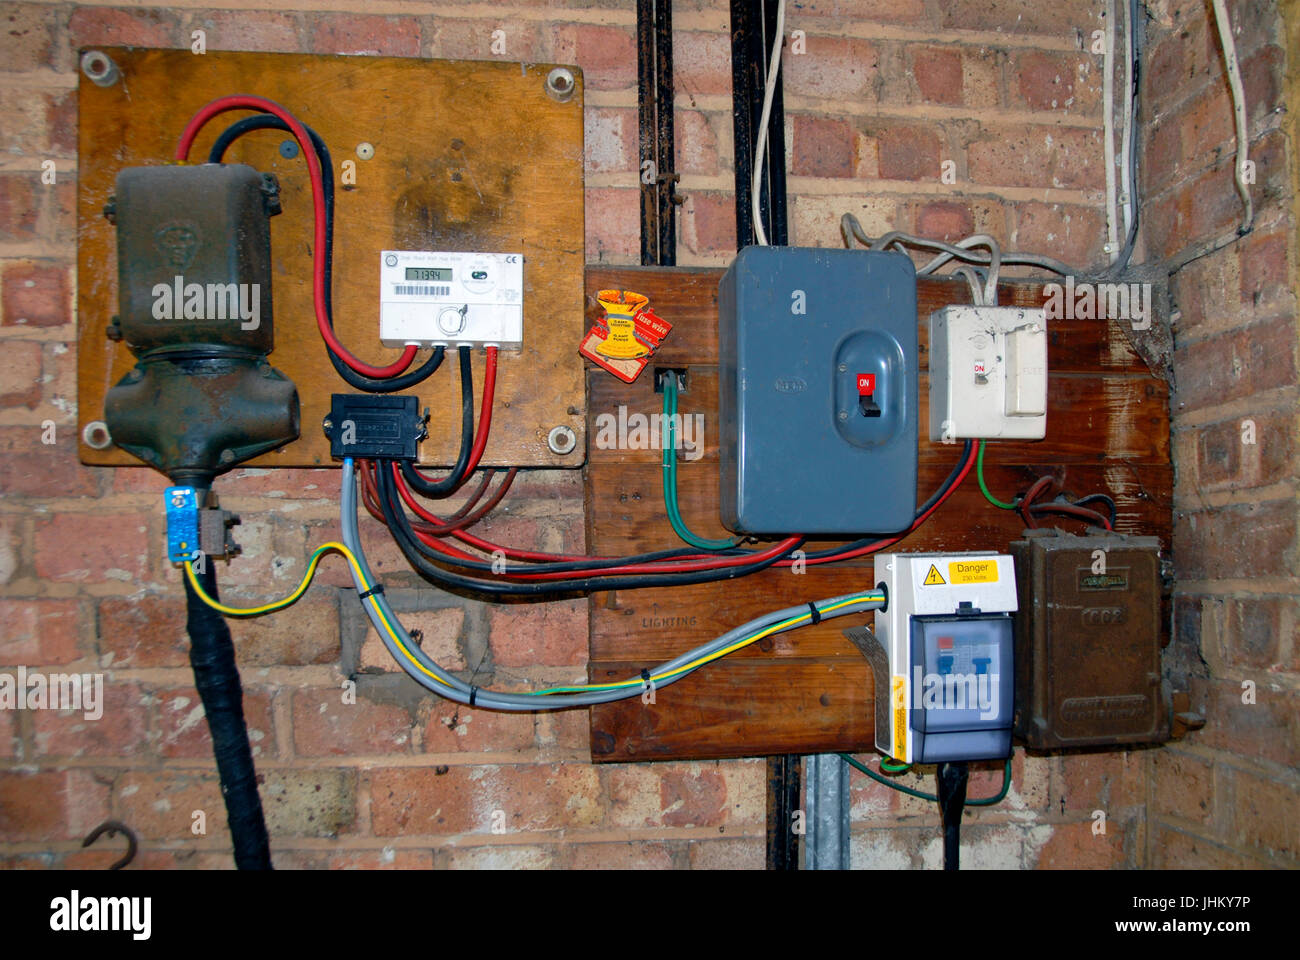 hight resolution of domestic electricity supply distribution board stock image